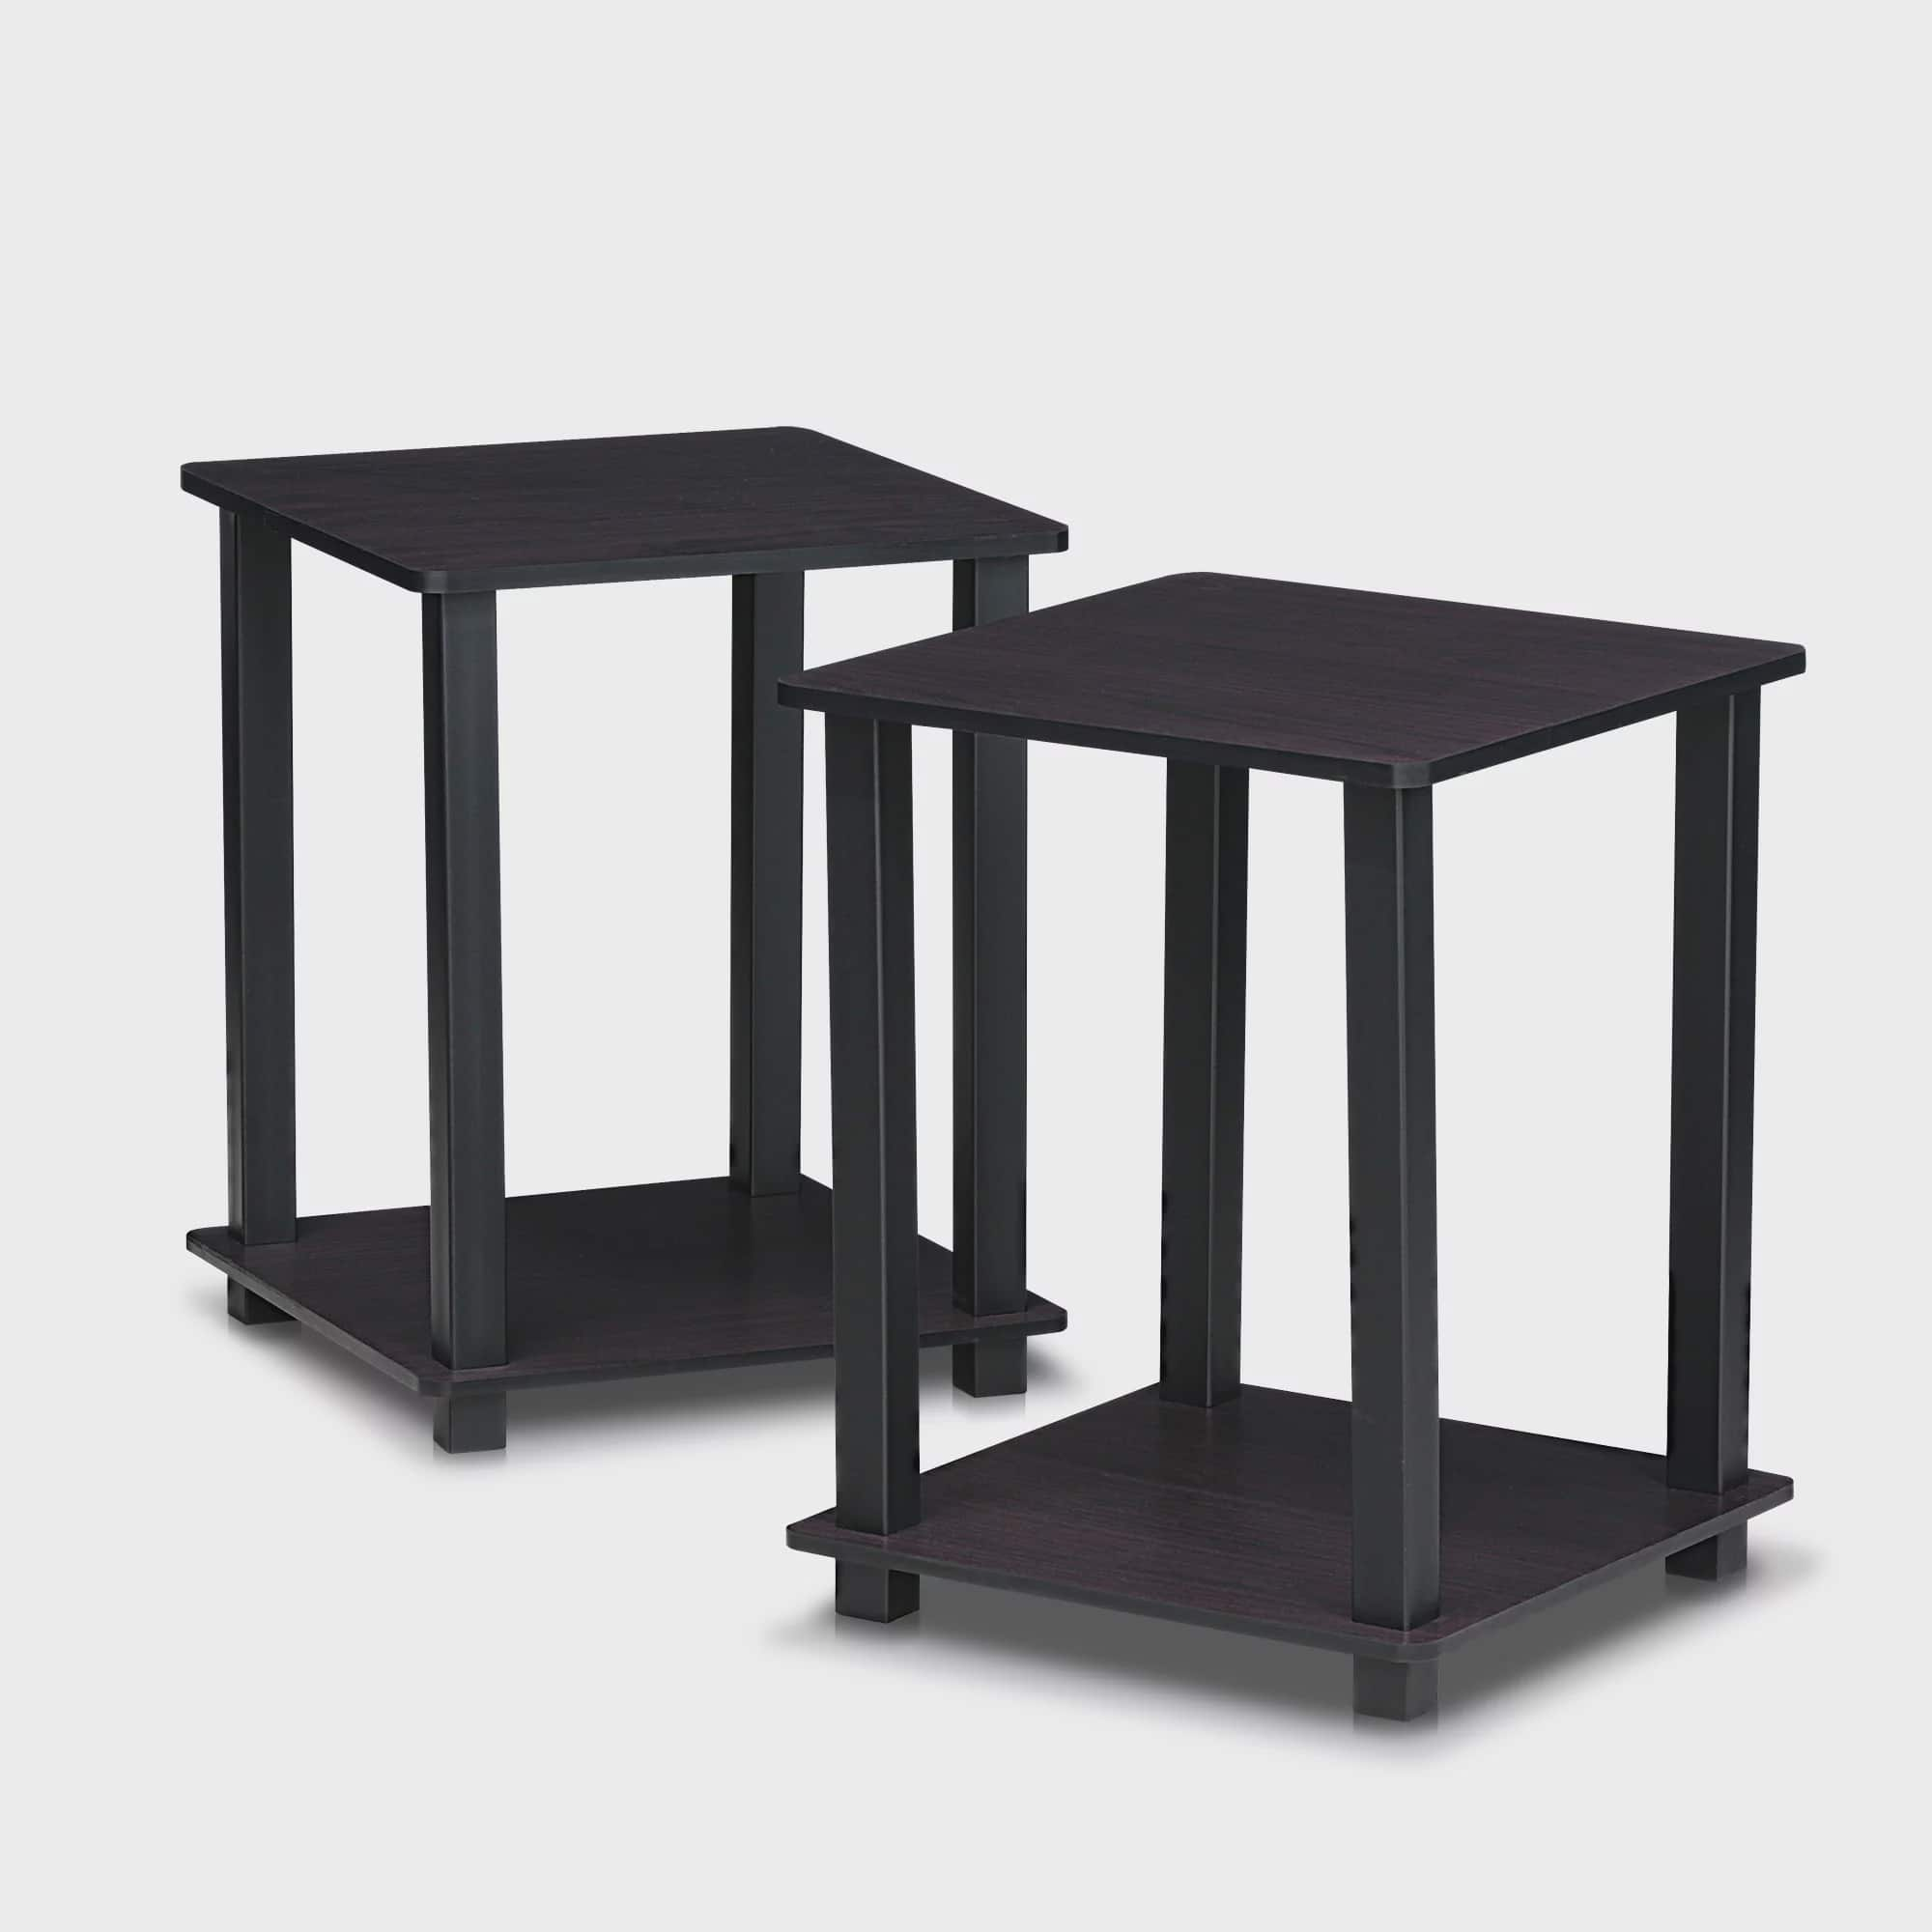 Furinno Turn-N-Tube Simplistic End Table, Set of Two by Furinno